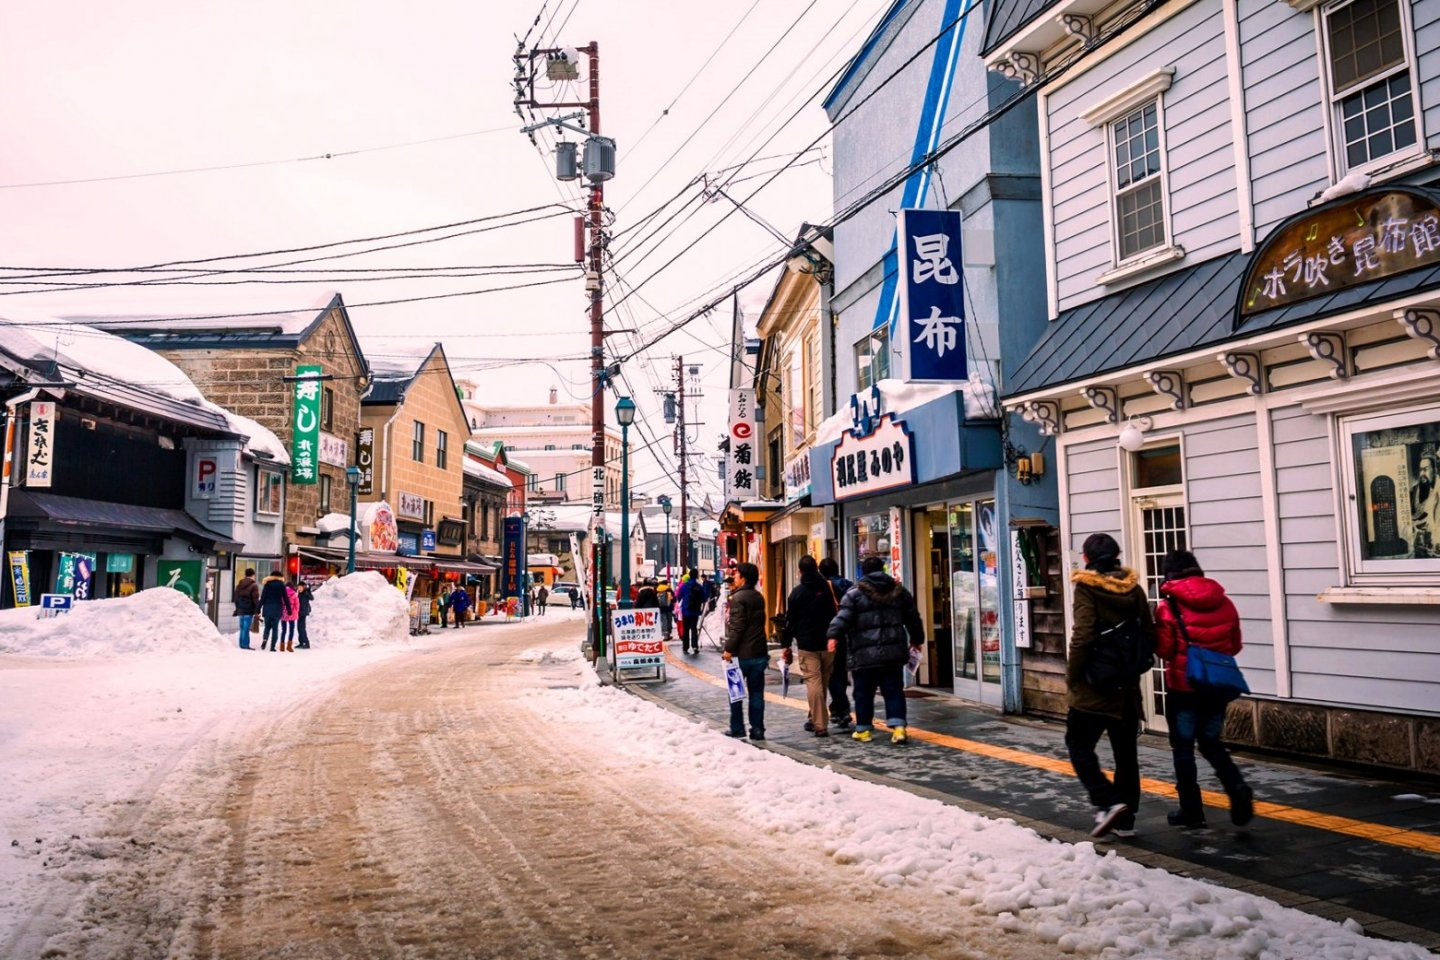 Otaru is a mixture of a frontier port, retro warehouses and artisan chic